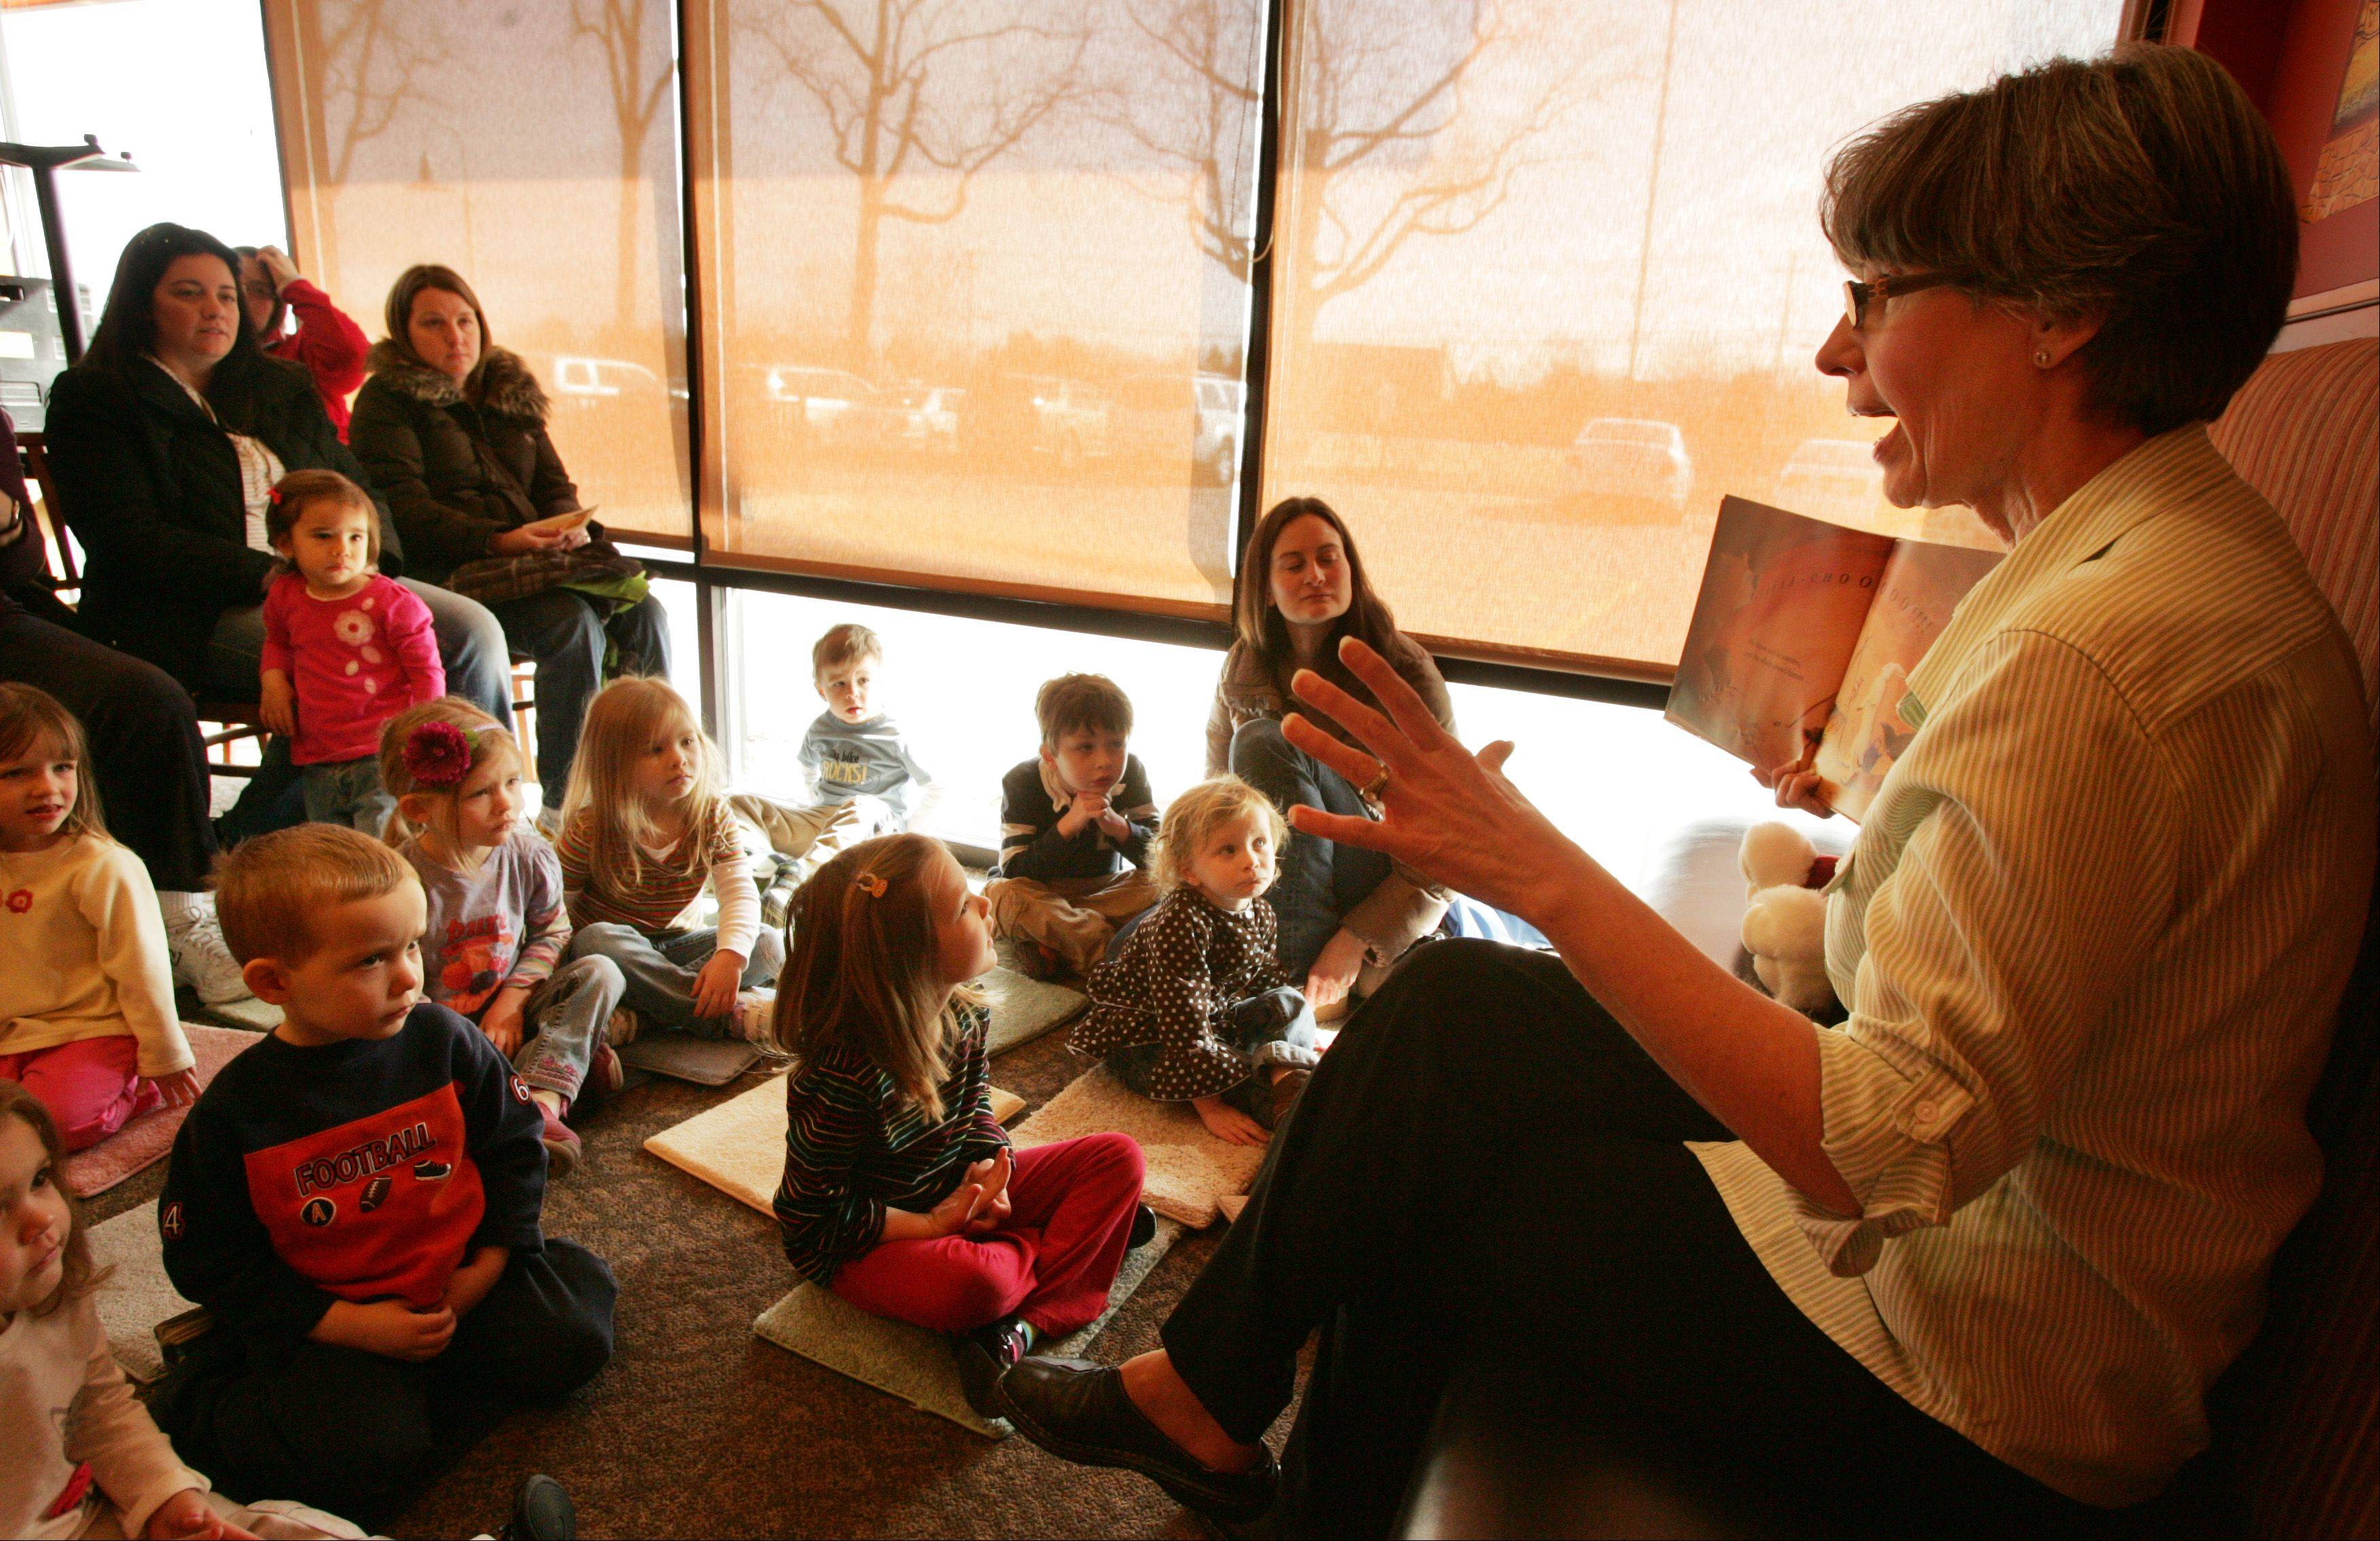 The Fox River Valley Public Library's popular Milk and Cookie Storytime will meet in February and March at Panera Bread on Randall Road in Elgin.